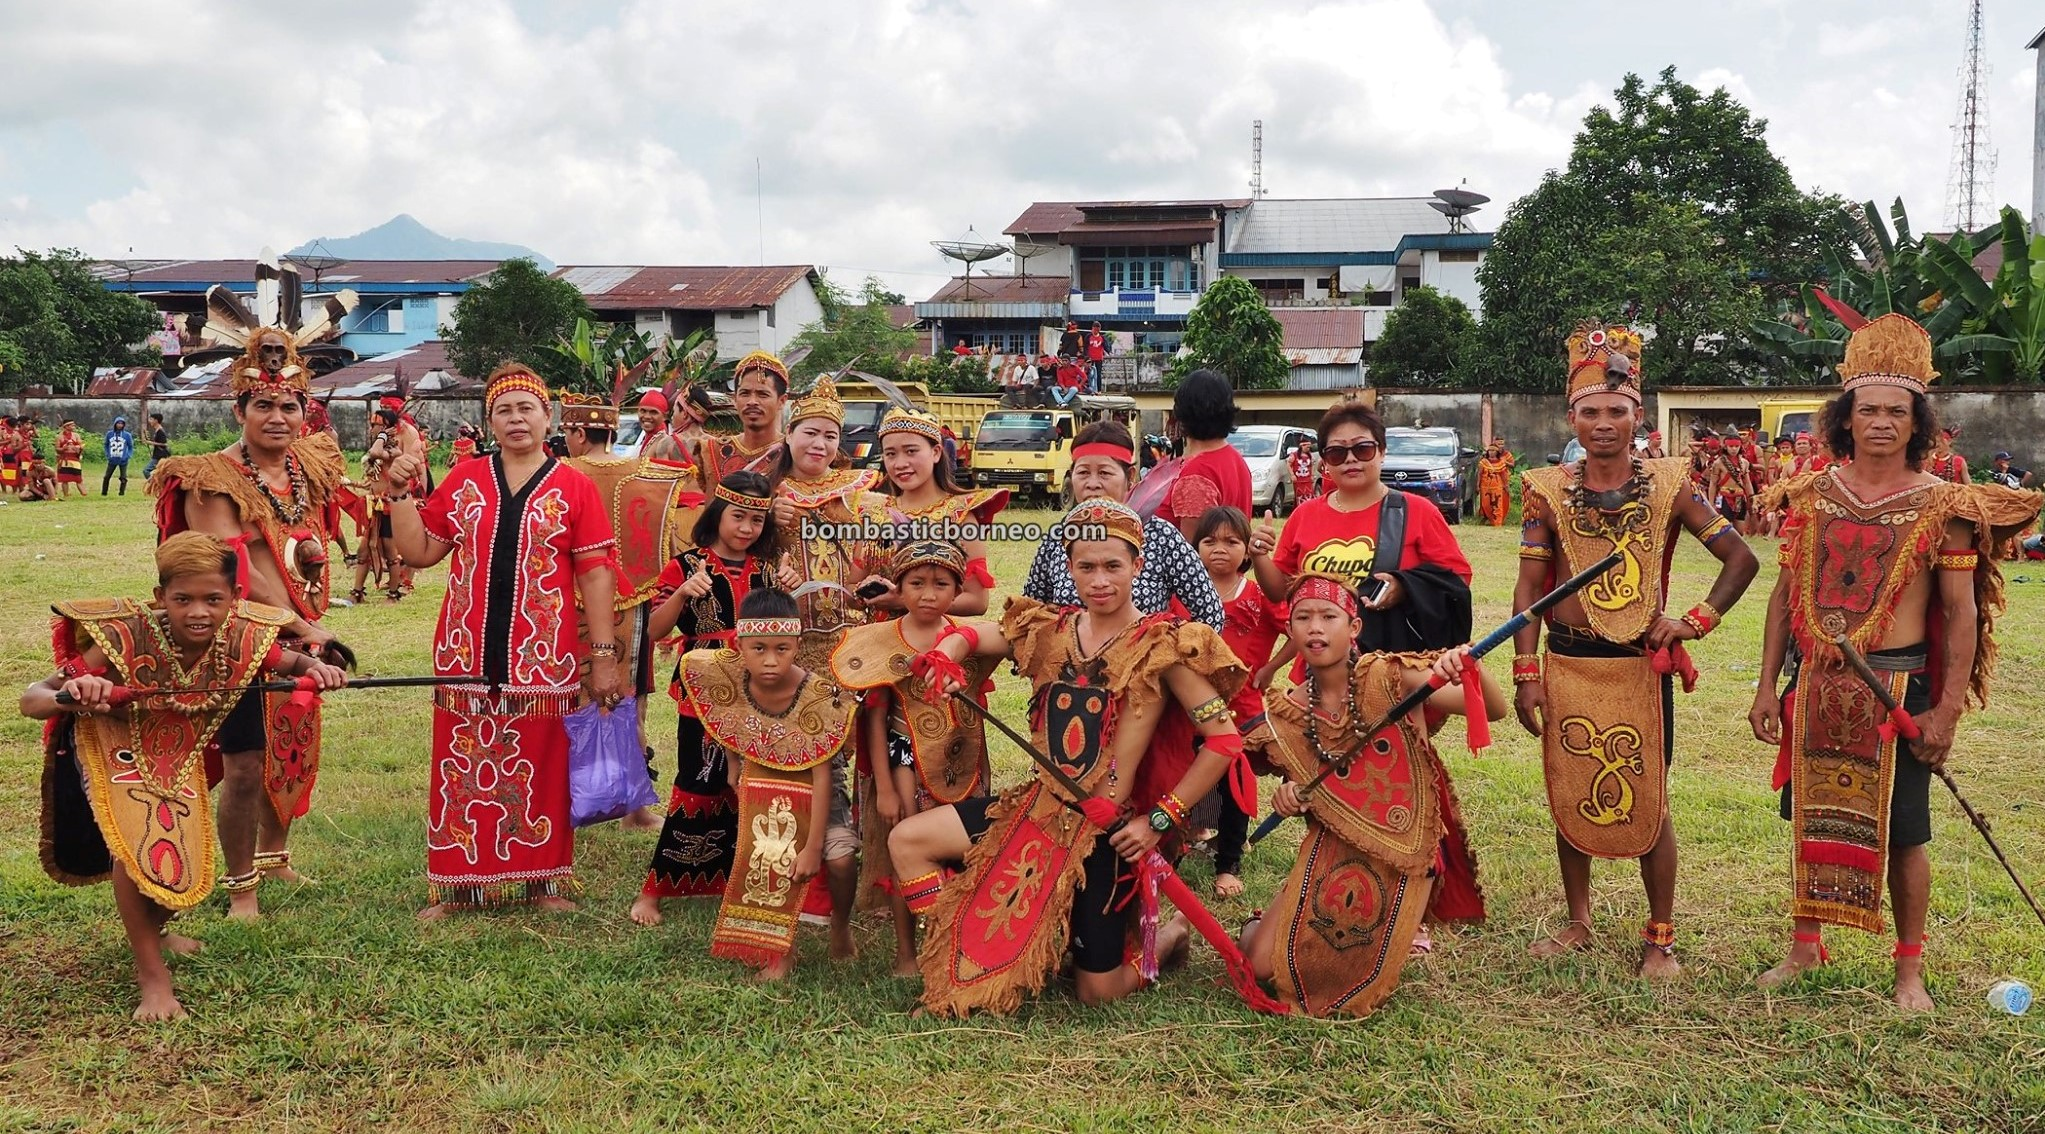 Festival Budaya Dayak, indigenous, traditional, culture, event, Ethnic, native, Indonesia, West Kalimantan, backpackers, Tourism, tourist attraction, travel guide, Cross Border, Borneo